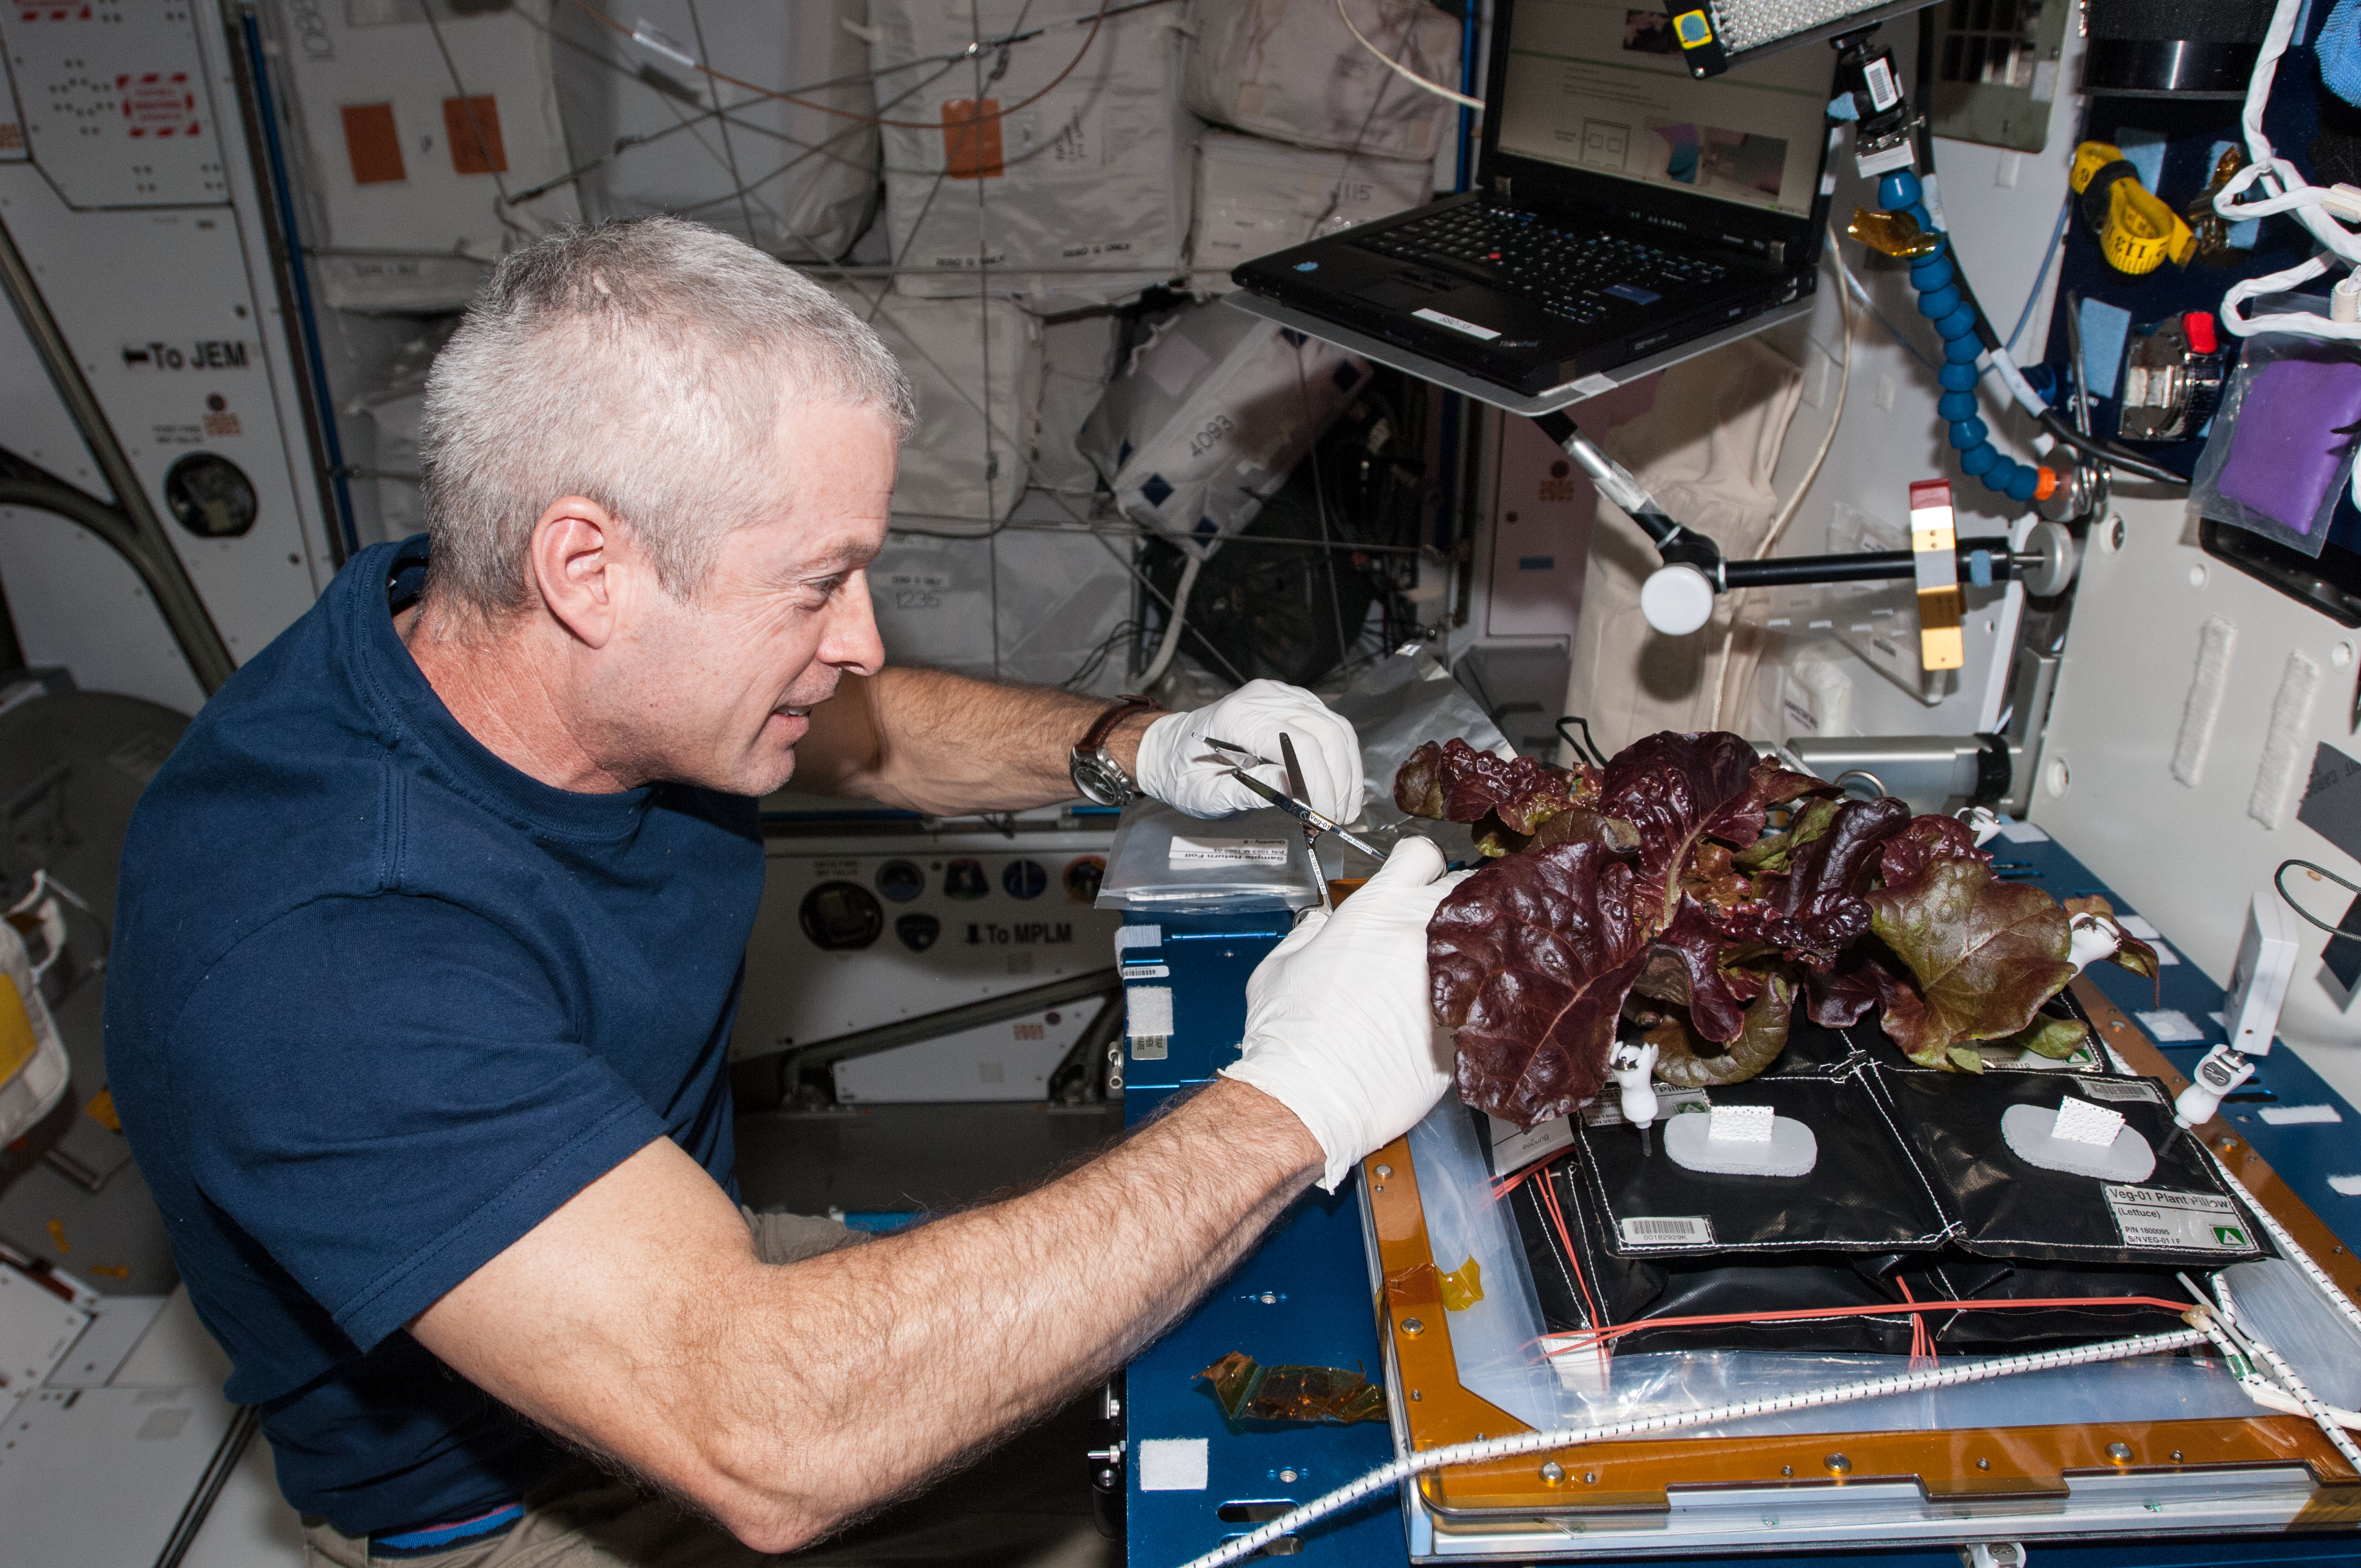 In the International Space Station's Harmony node, NASA astronaut Steve Swanson harvests a crop of red romaine lettuce plants that were grown from seed inside the station's Veggie facility,